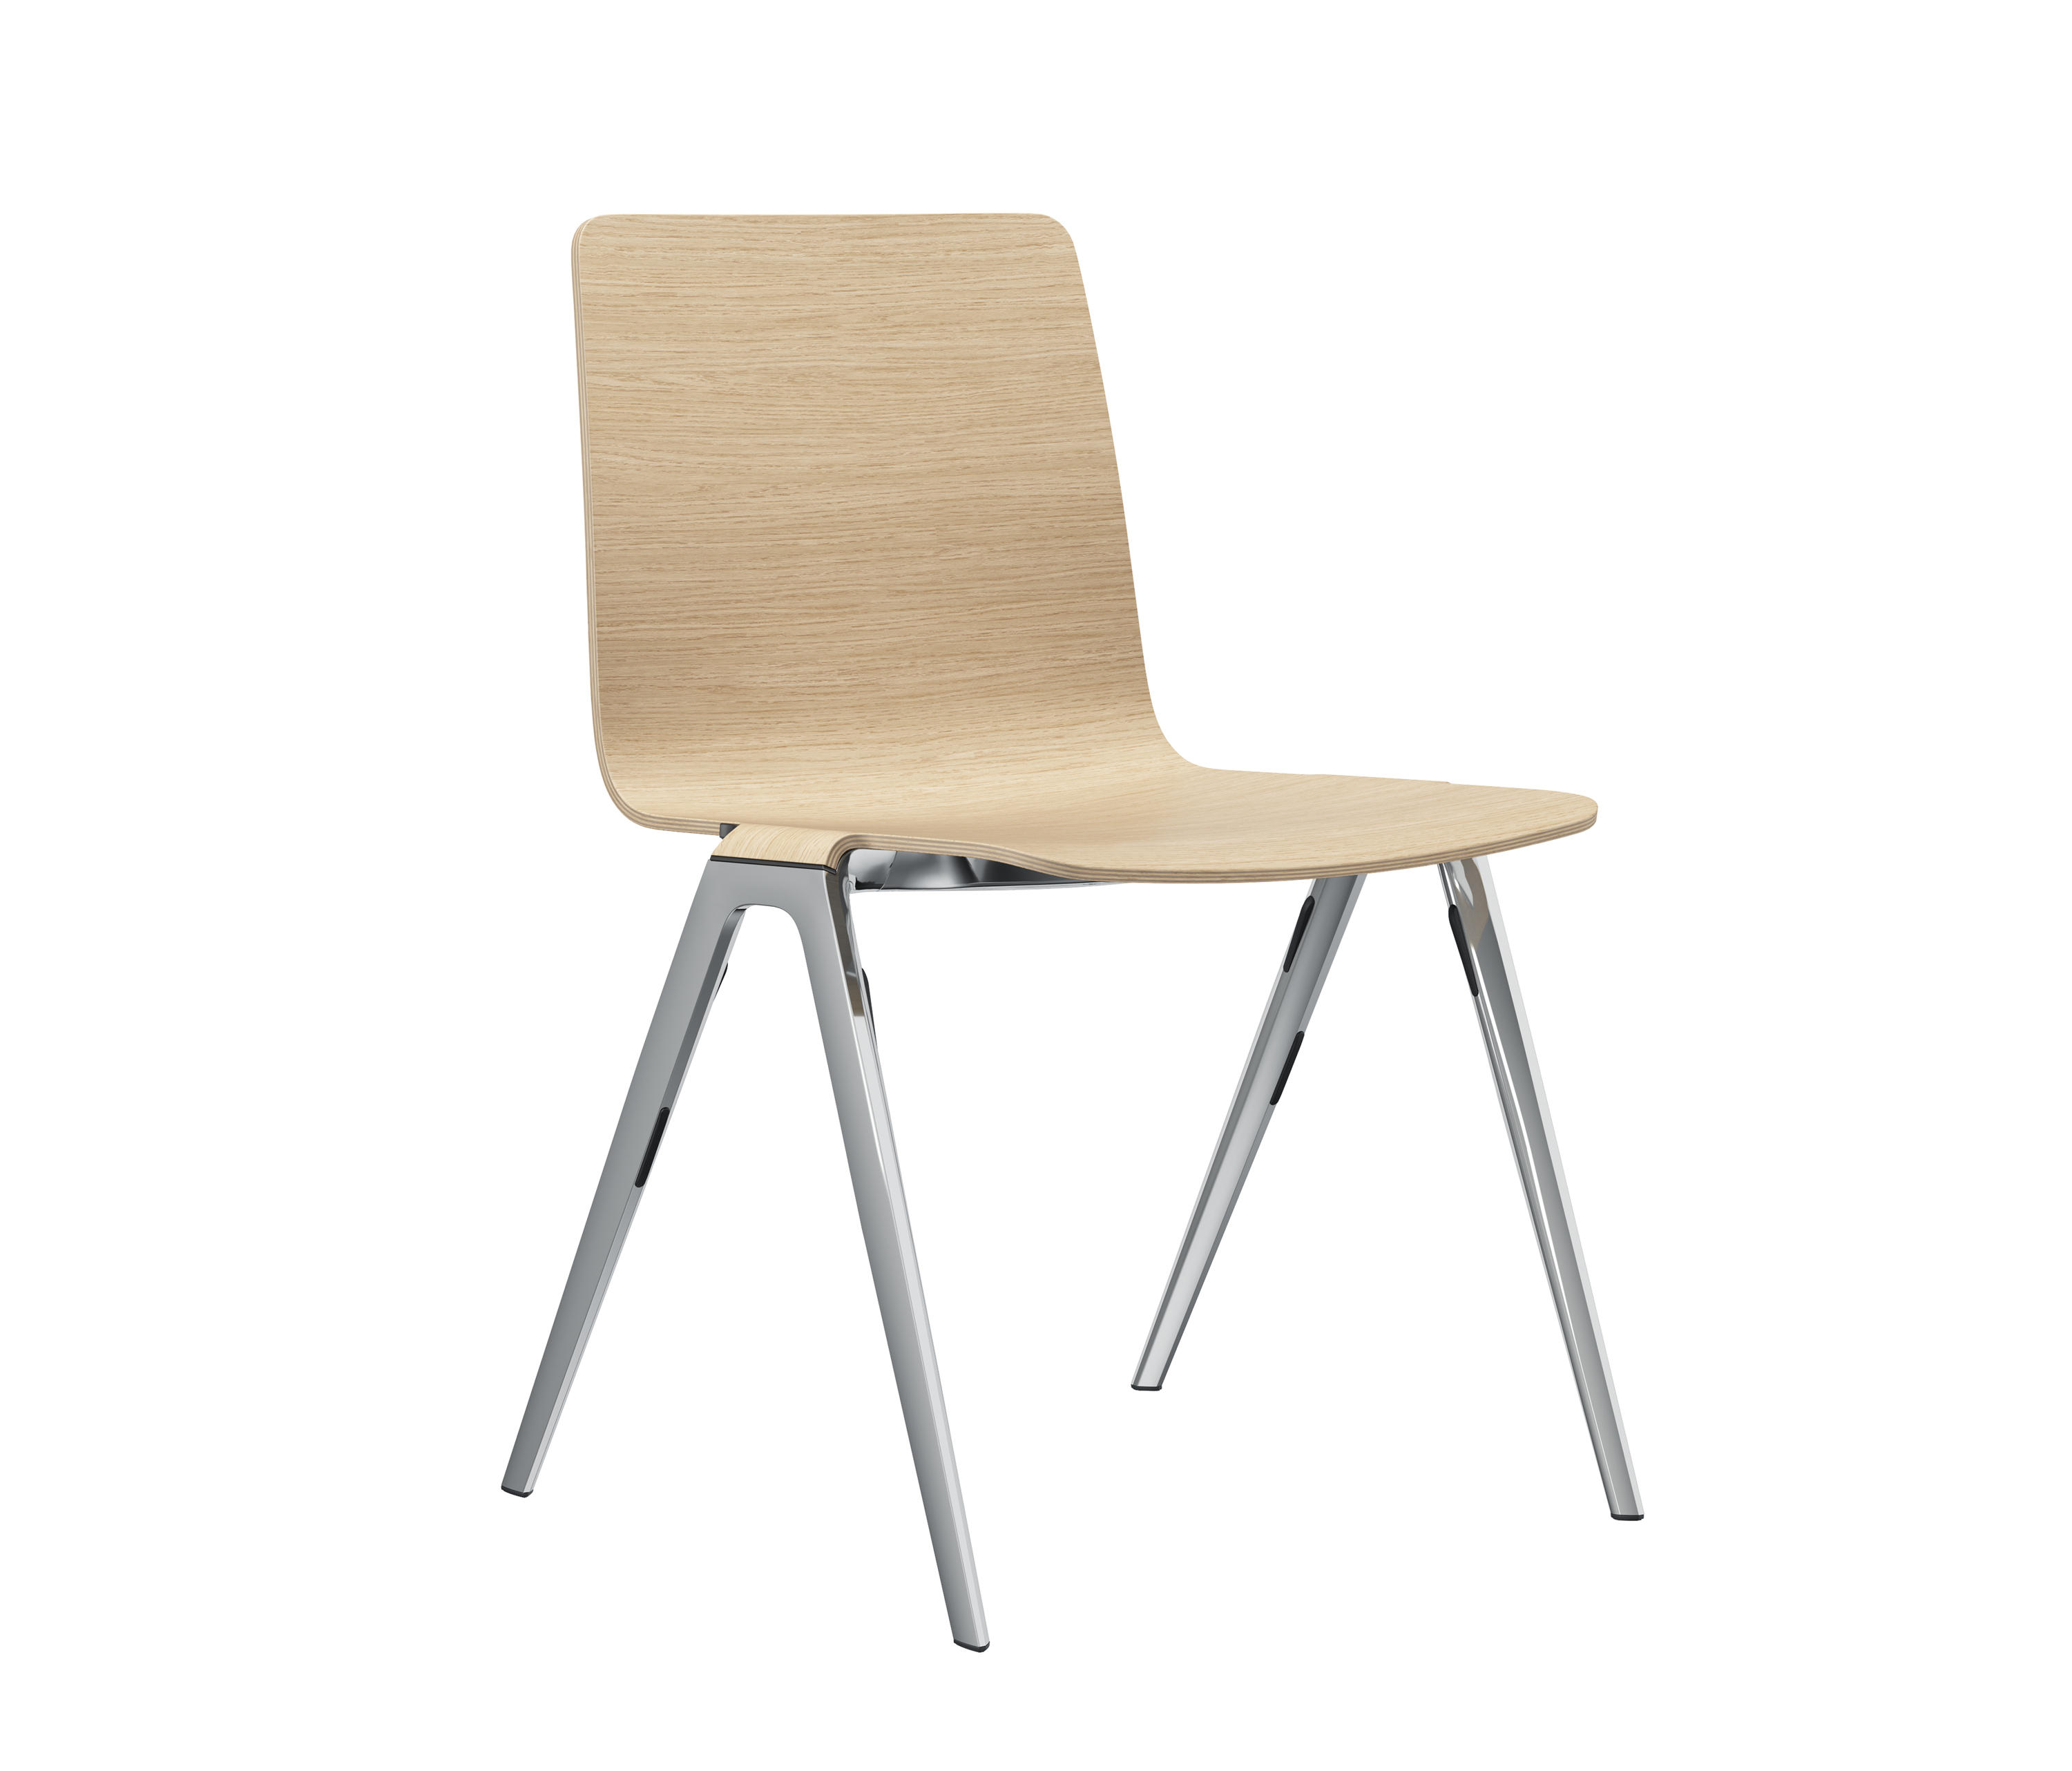 A-CHAIR 9702 - Chairs from Brunner   Architonic